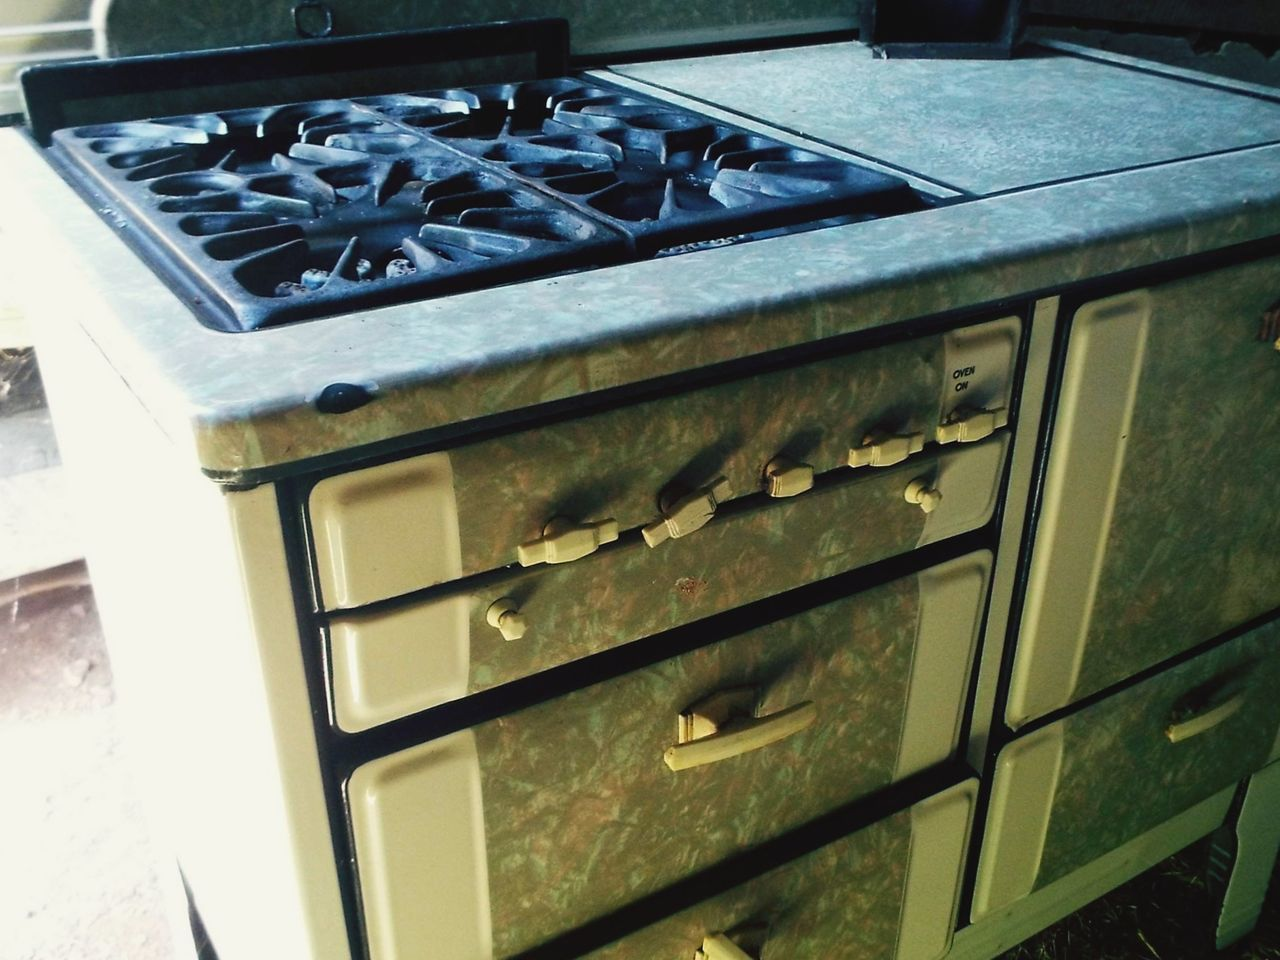 metal, stove, close-up, no people, day, old-fashioned, outdoors, domestic room